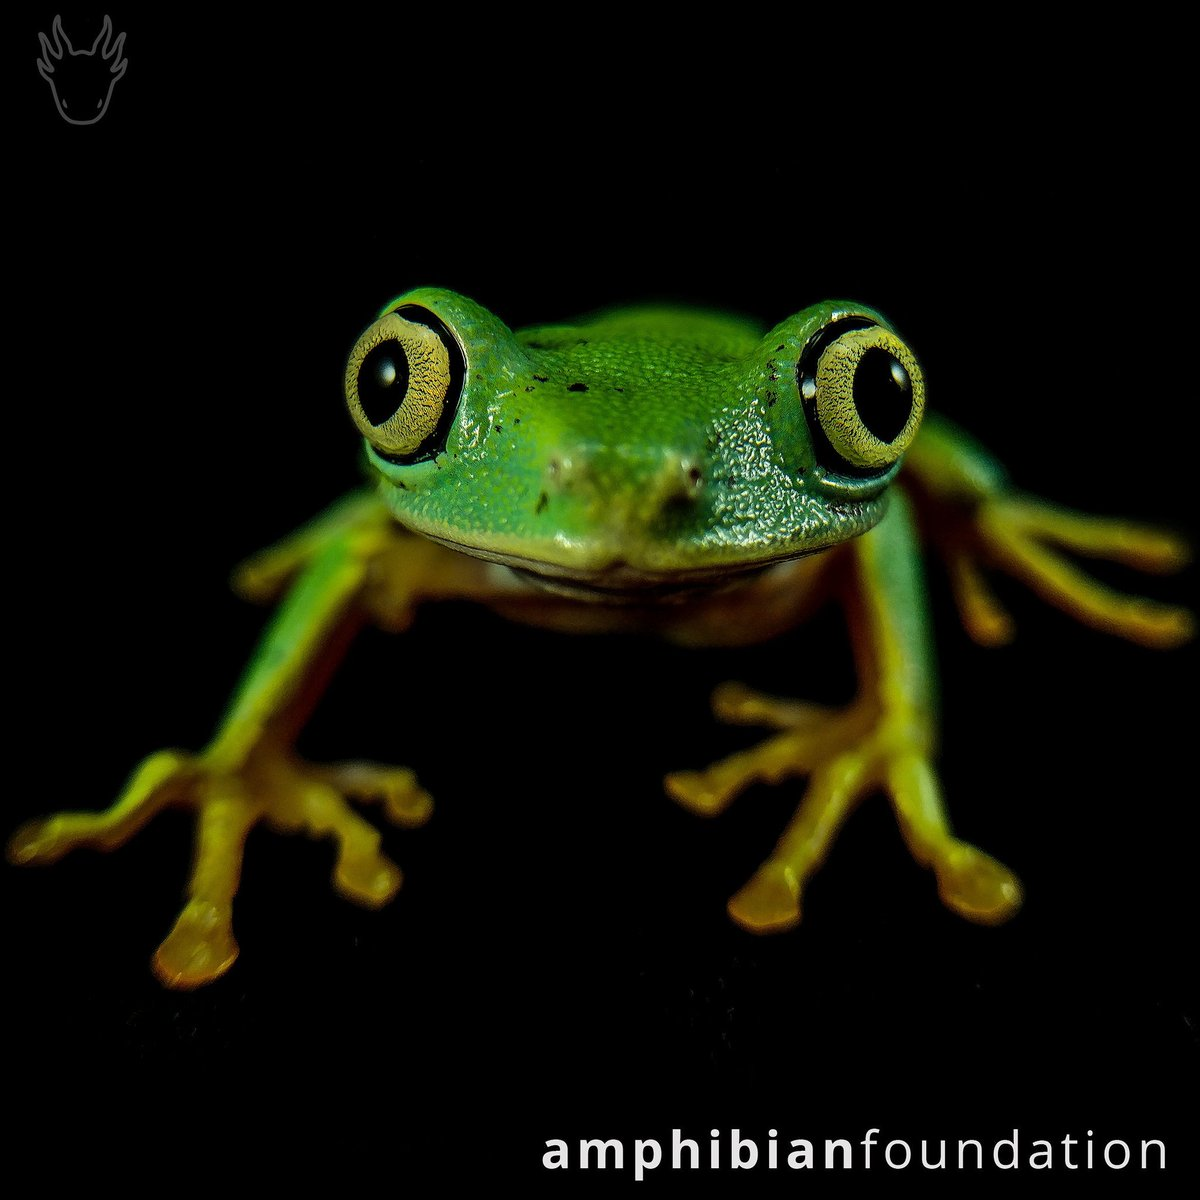 Amphibian Foundation